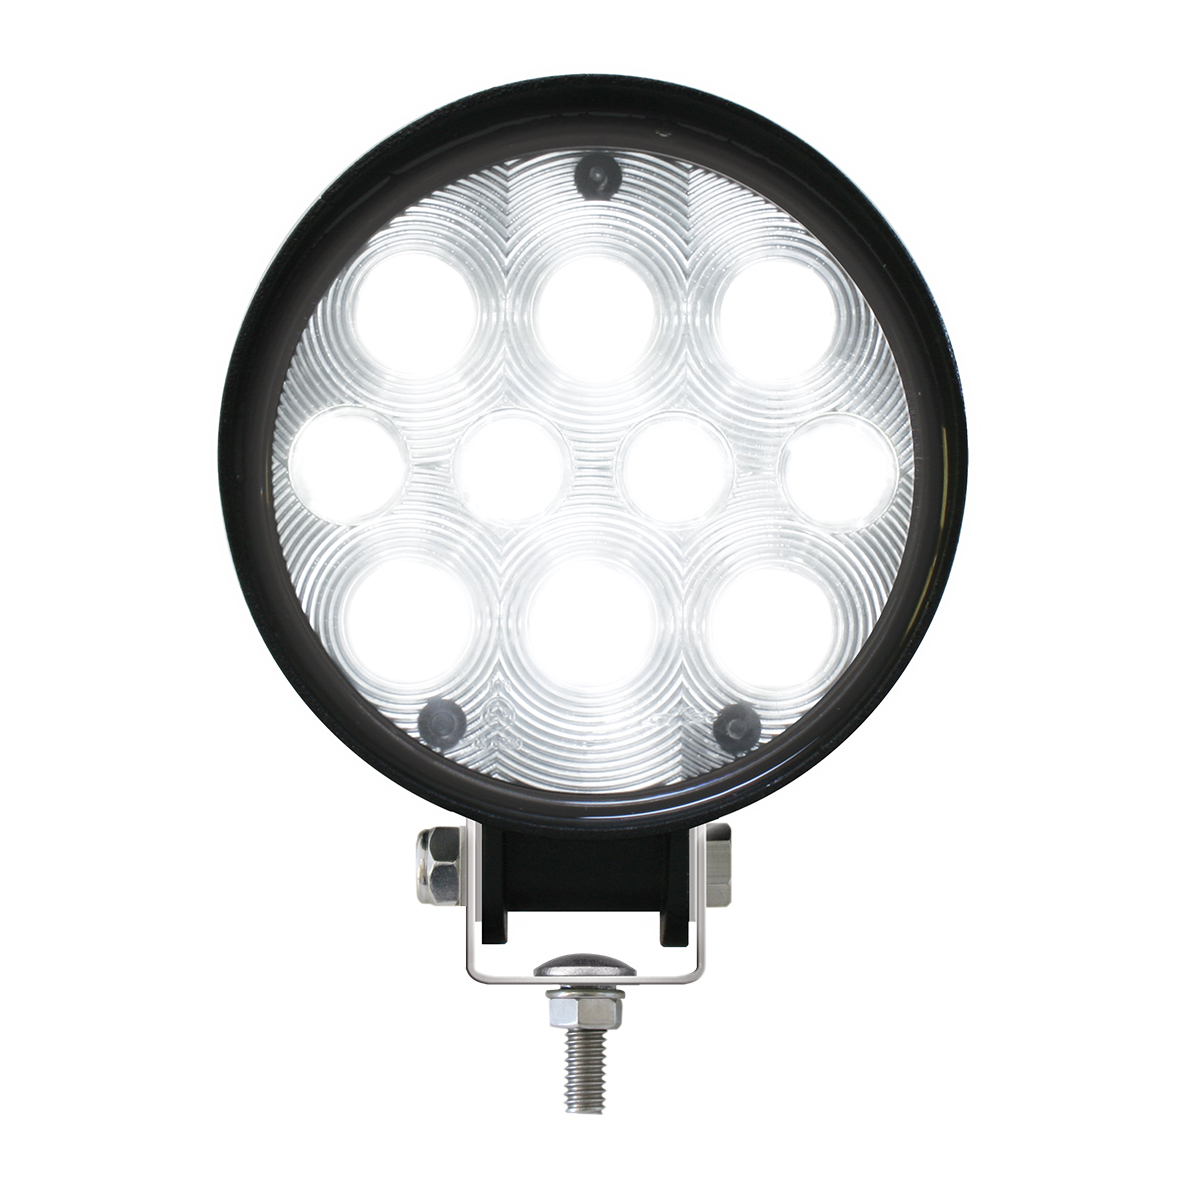 76353 Large High Power LED Work Light